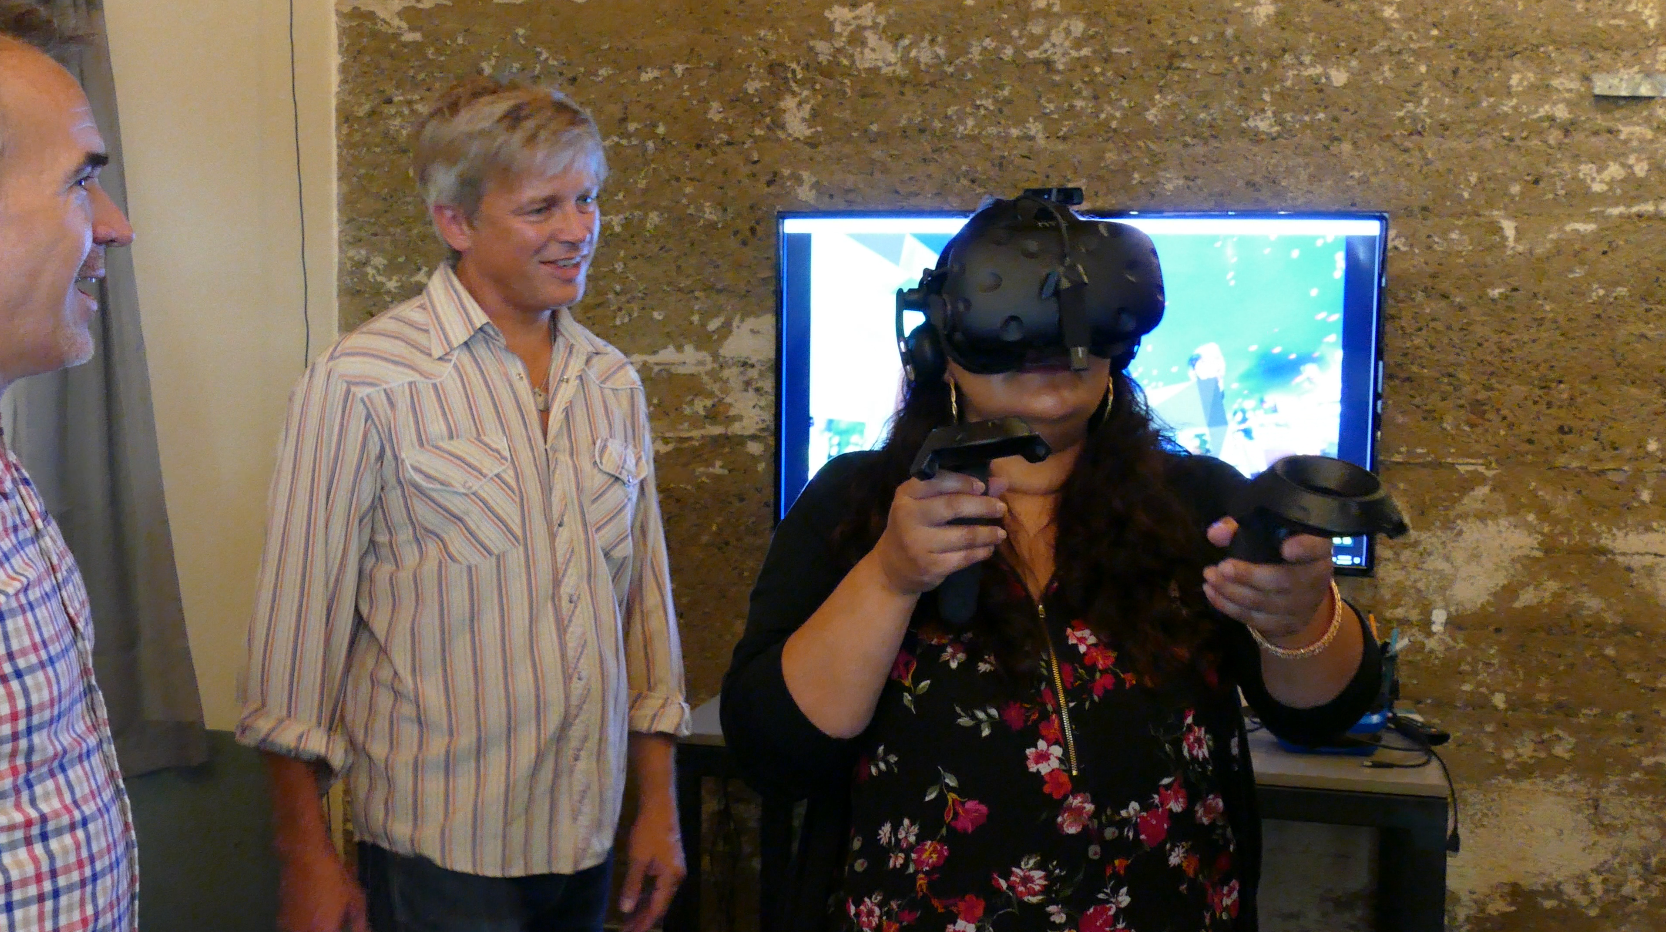 second life founder philip rosedale looks on as caregiver cecii tries social vr [high fidelity in this case] for the first time...